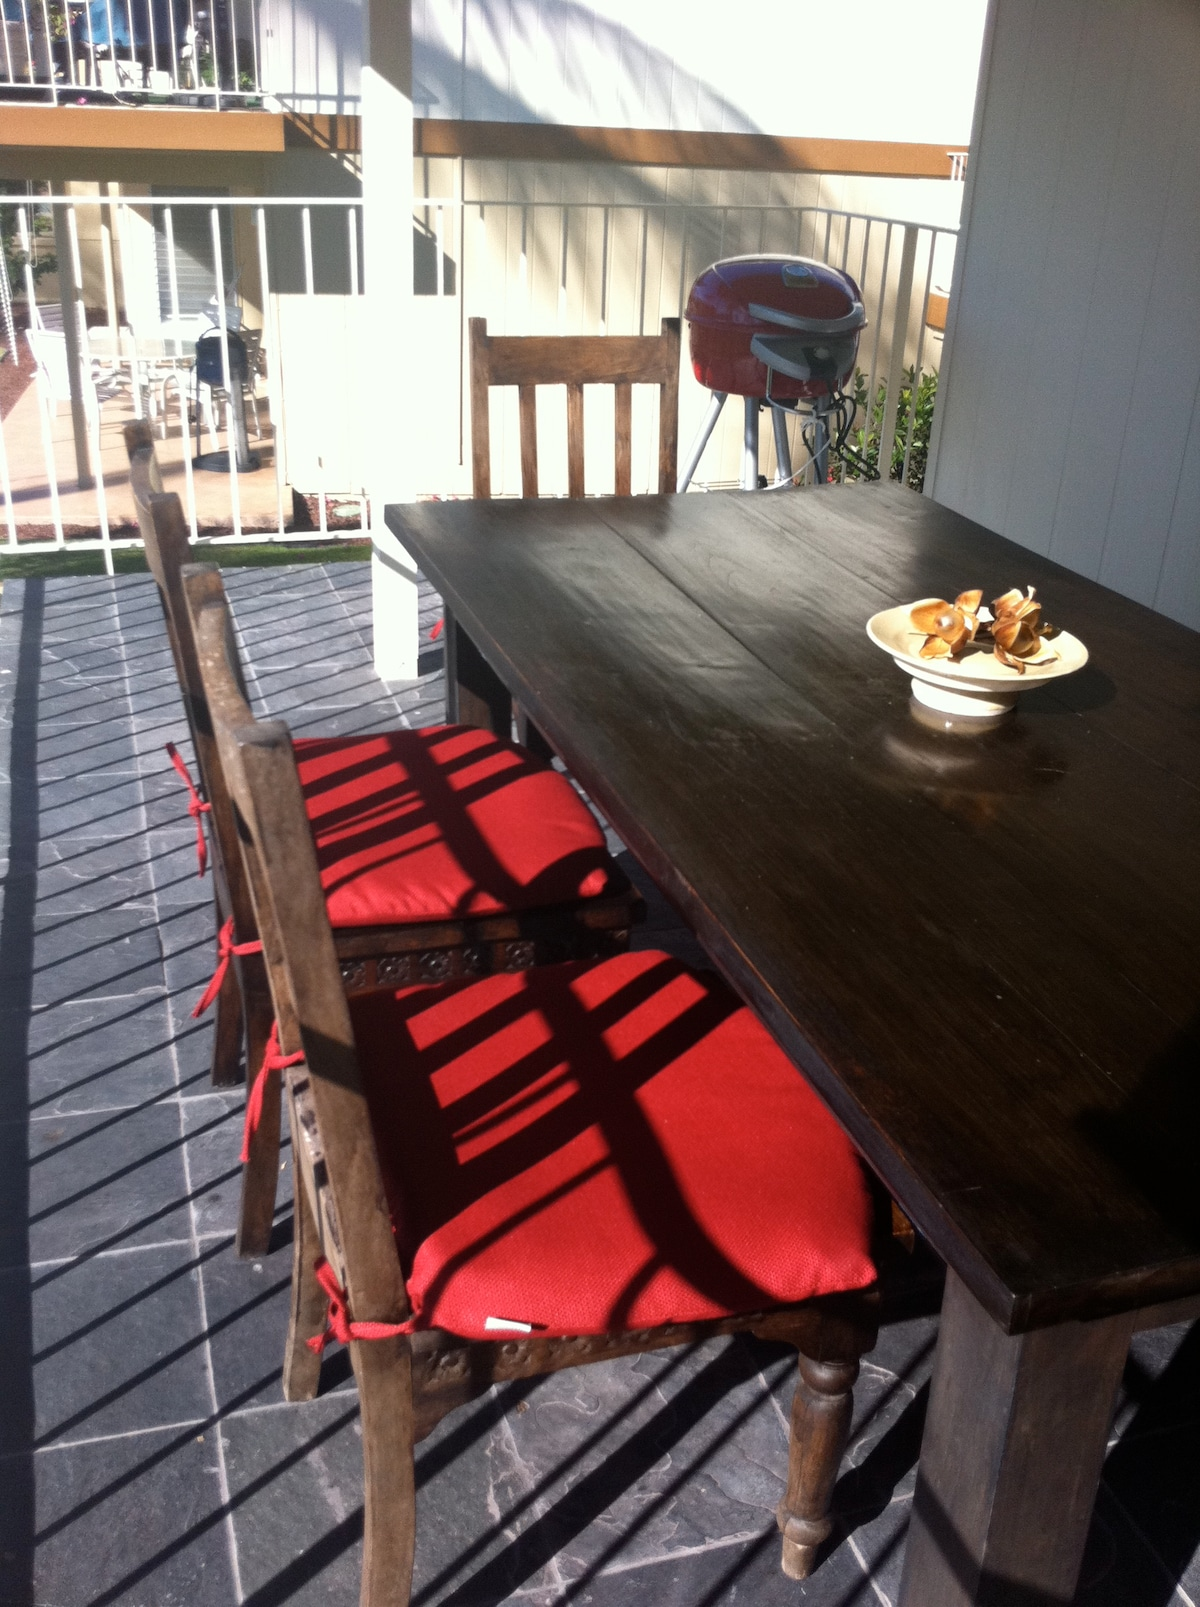 New electric grill with stone slate tile and teak dining table for six.